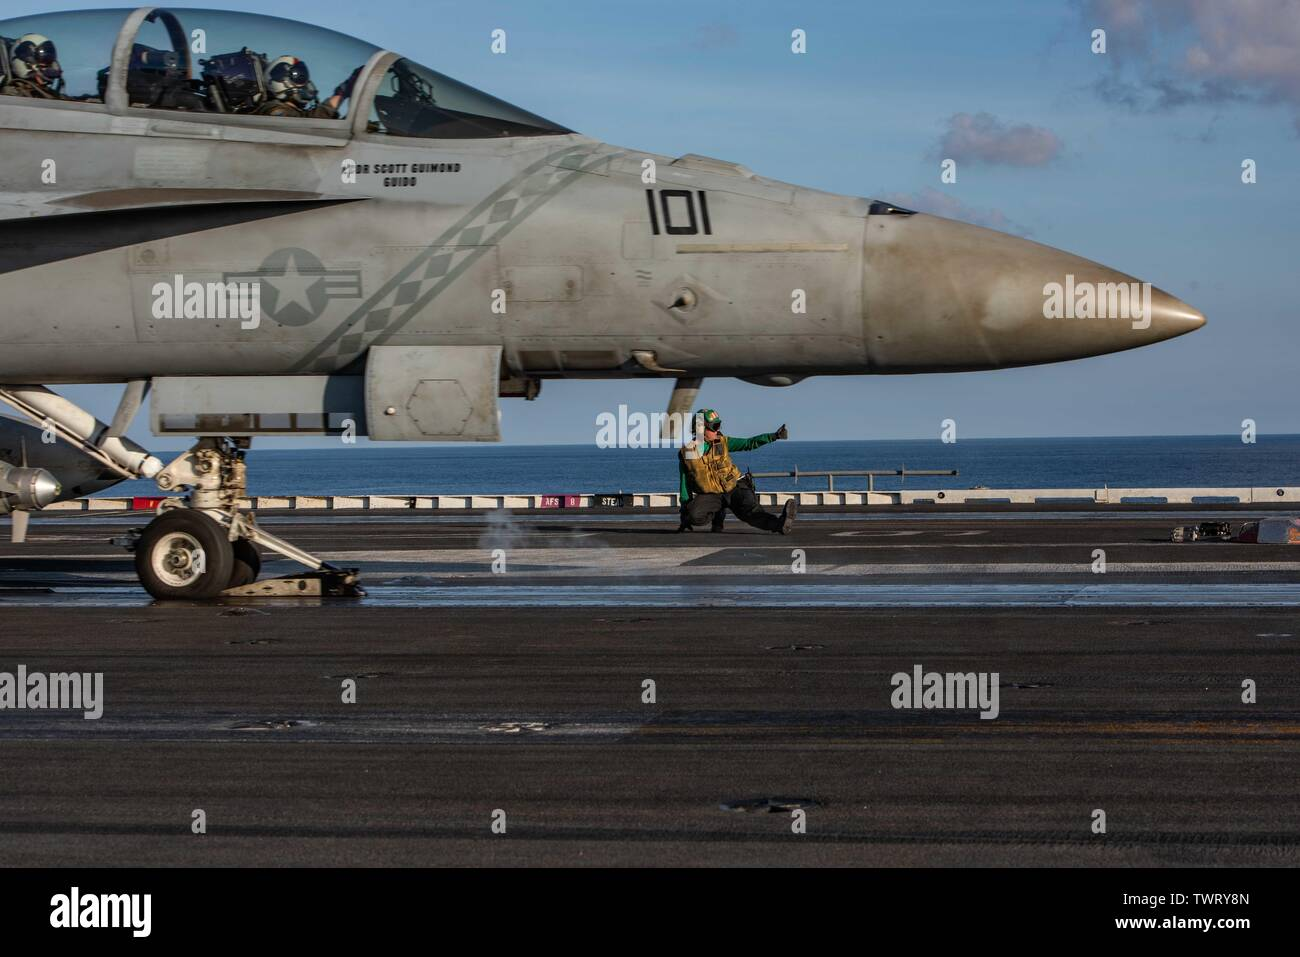 190620-N-CL027-2081  SOUTH CHINA SEA (June 20, 2019) Aviation Boatswain's Mate (Equipment) 3rd Class Shelbey Hochsmith, from Federalsburg, Maryland, signals all-clear to launch an F/A-18F Super Hornet from Strike Fighter Squadron (VFA) 102 on the flight deck aboard the Navy's forward-deployed aircraft carrier USS Ronald Reagan (CVN 76) during flight operations. Ronald Reagan, the flagship of Carrier Strike Group 5, provides a combat-ready force that protects and defends the collective maritime interests of its allies and partners in the Indo-Pacific region. (U.S. Navy photo by Mass Communicati - Stock Image